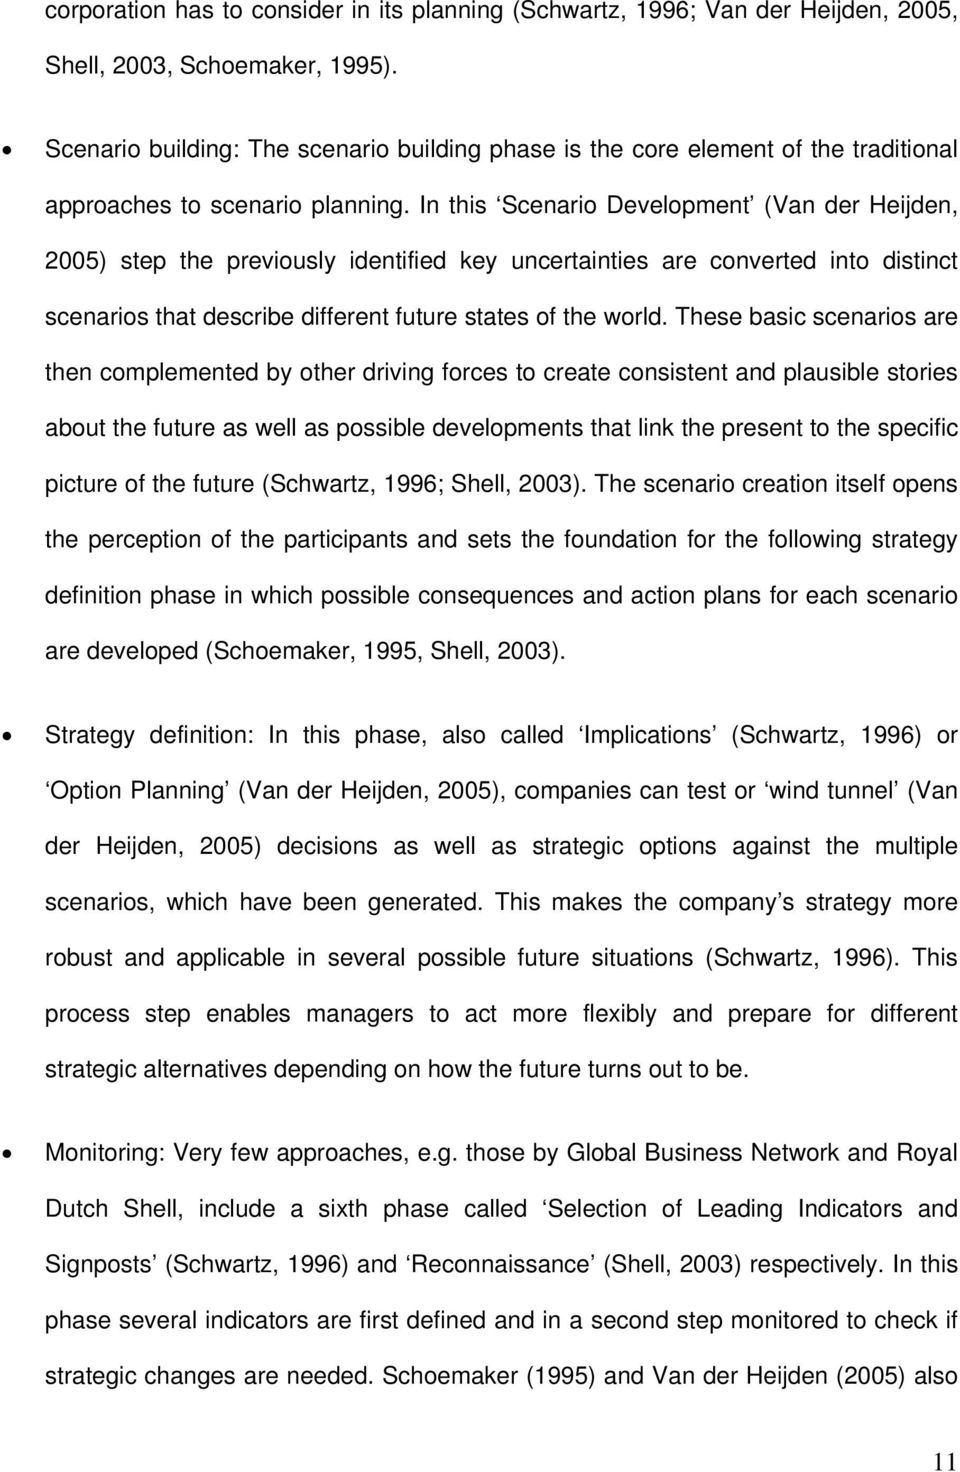 In this Scenario Development (Van der Heijden, 2005) step the previously identified key uncertainties are converted into distinct scenarios that describe different future states of the world.